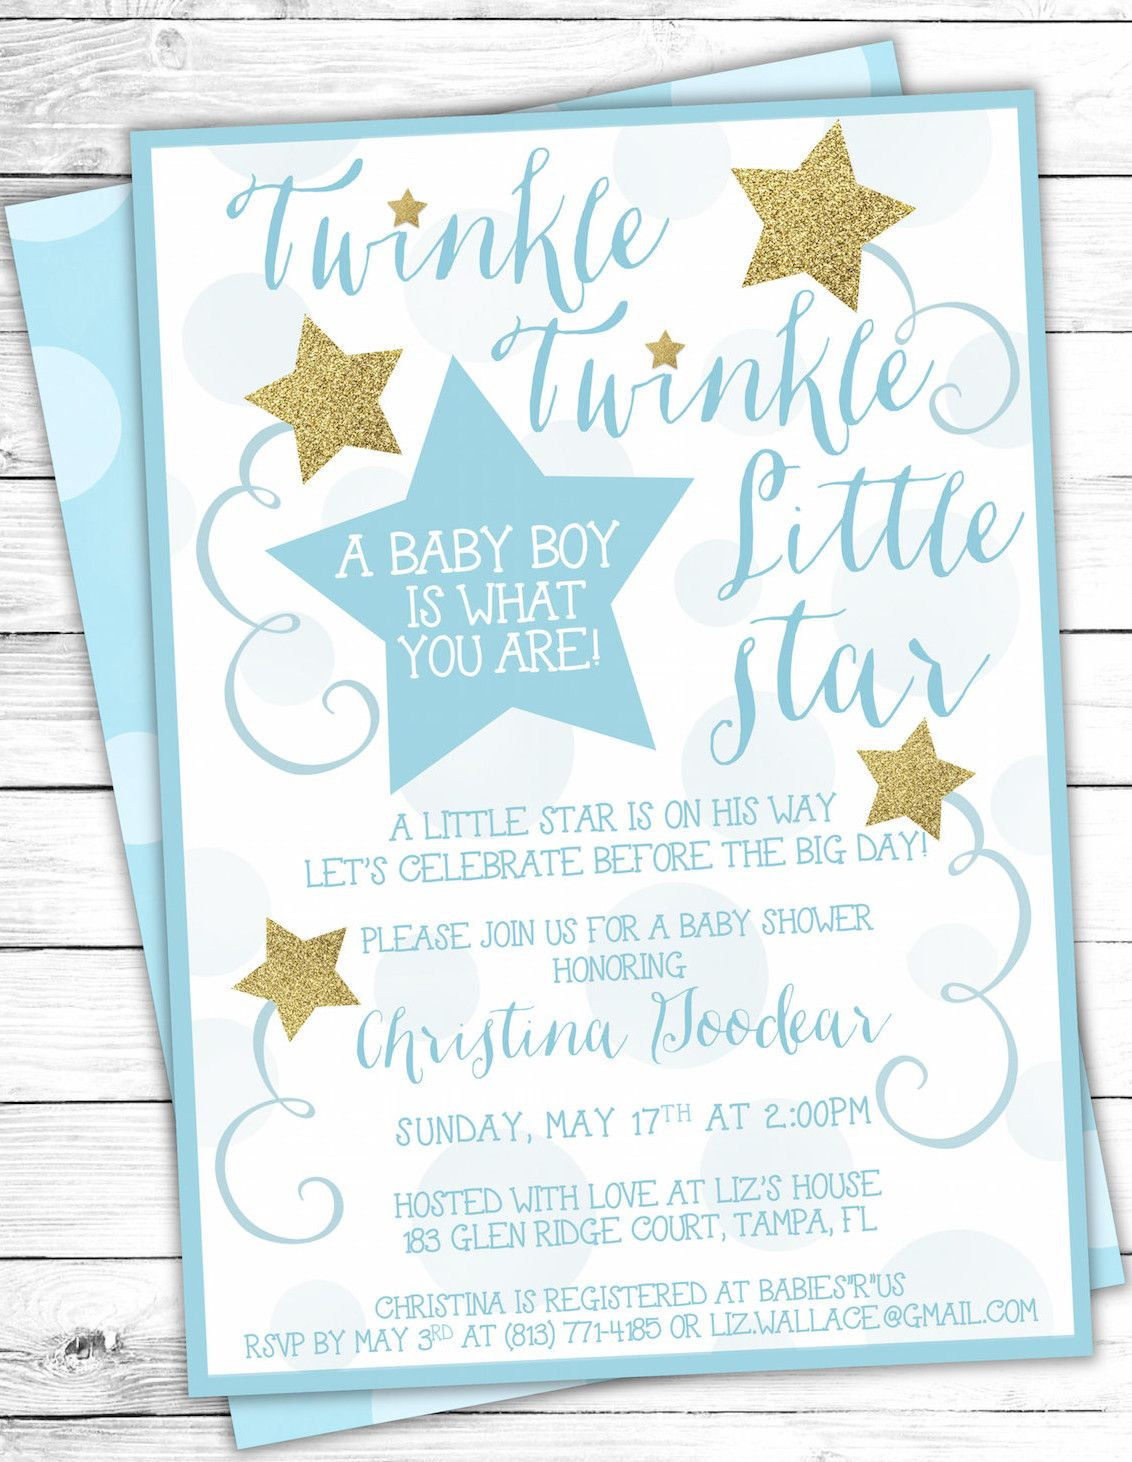 Twinkle twinkle little star party theme planning ideas supplies blue gold twinkle twinkle little star baby shower invites filmwisefo